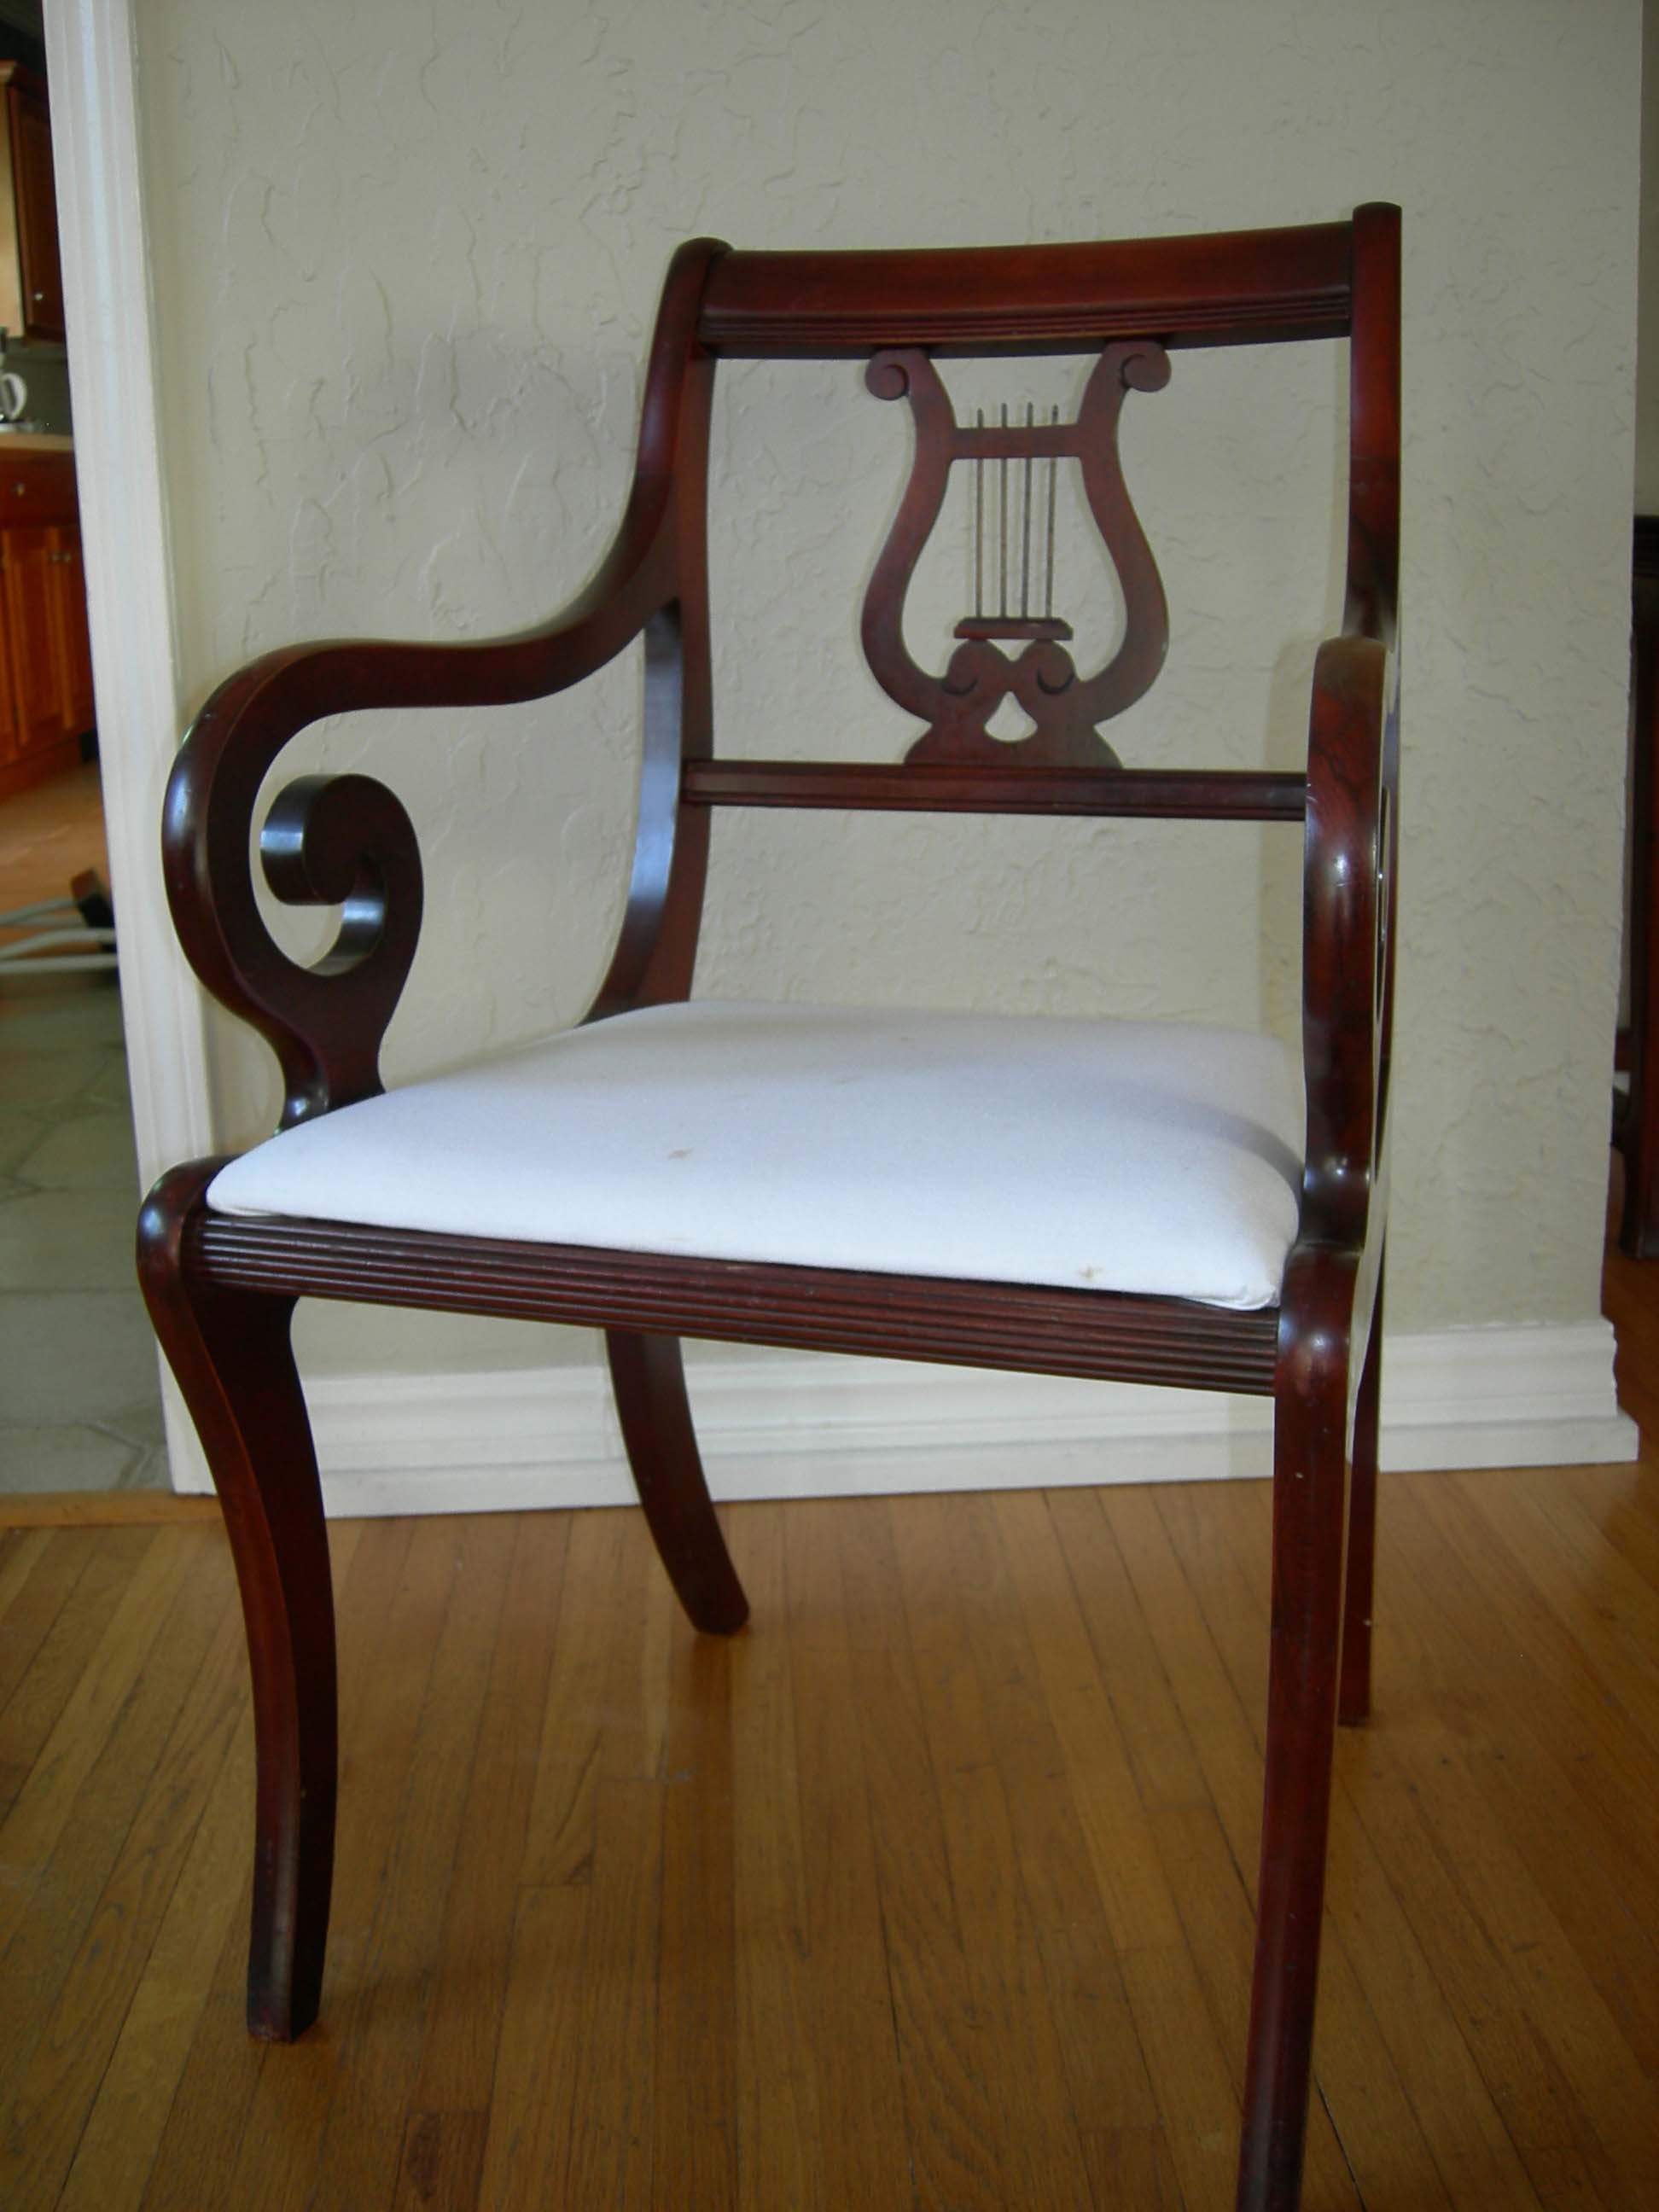 Duncan Phyfe Pedistal Mahogany Table 6 Lyre Back Chairs